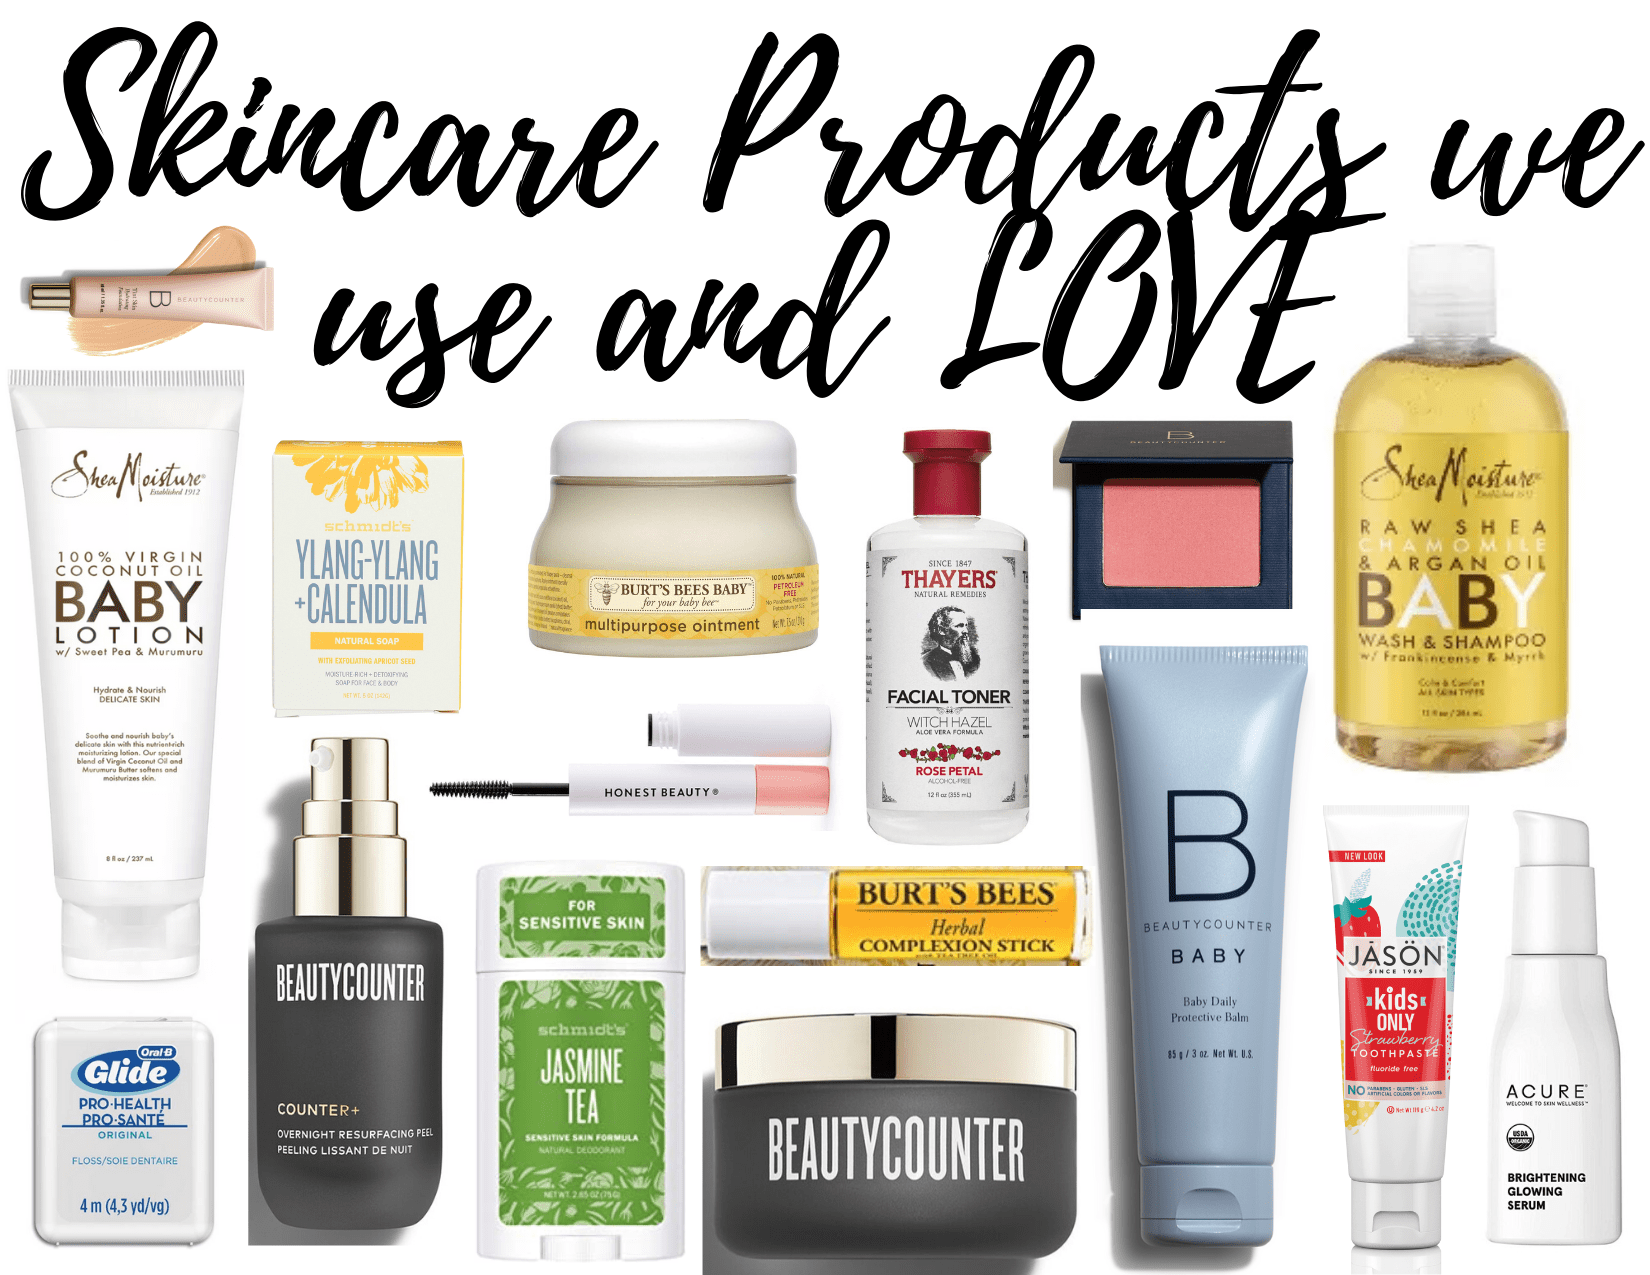 skincare products woman love to use